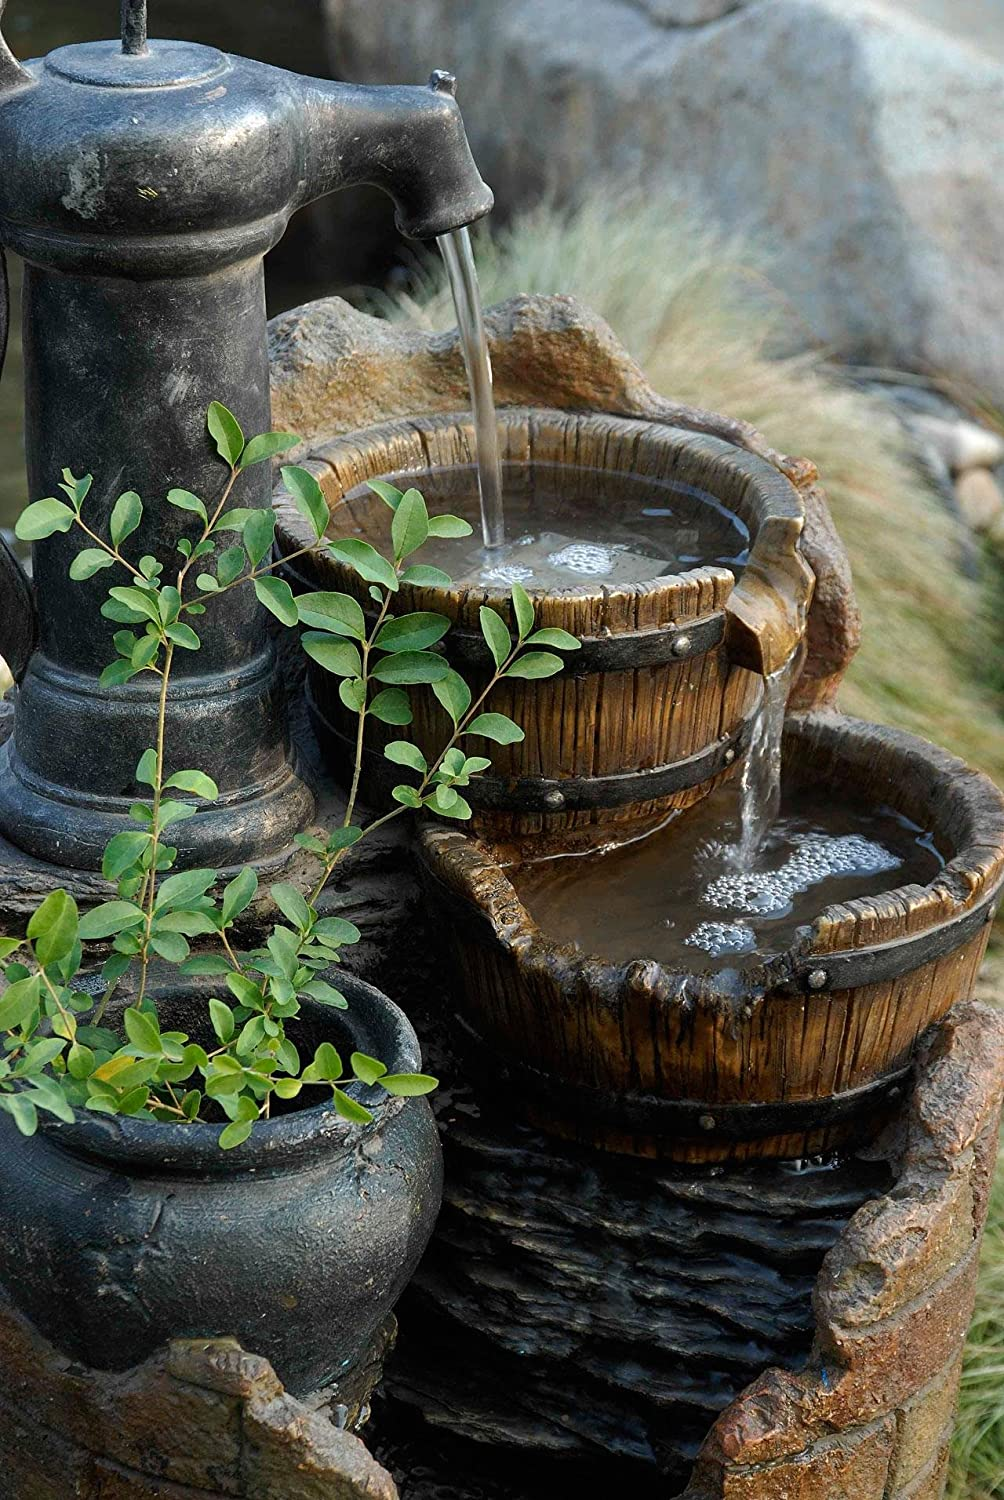 Outdoor Fountains For Sale Near Me Medium Image For Water